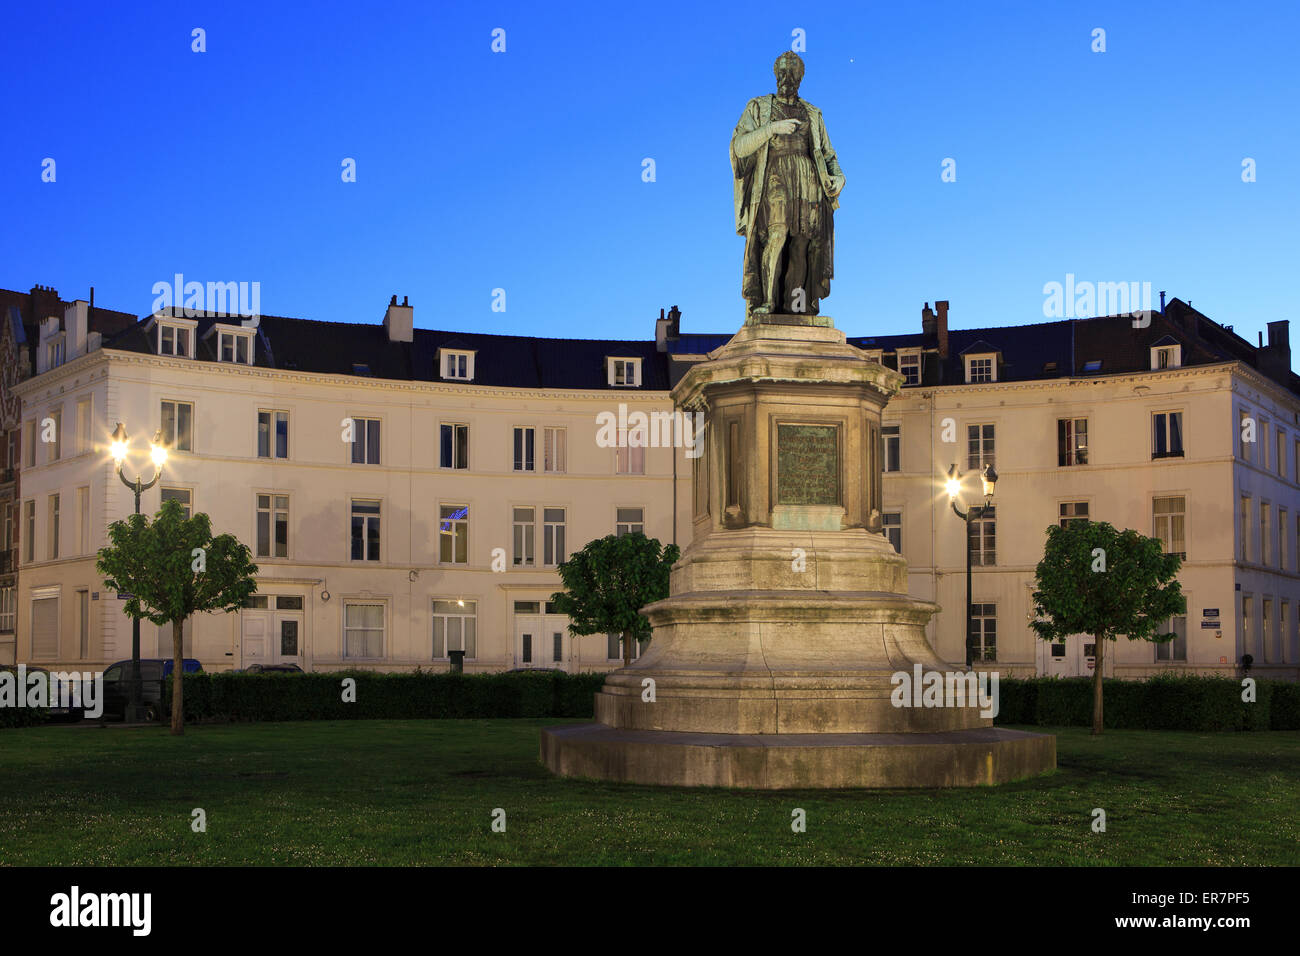 Statue of the anatomist and physician Andreas Vesalius in Brussels, Belgium - Stock Image